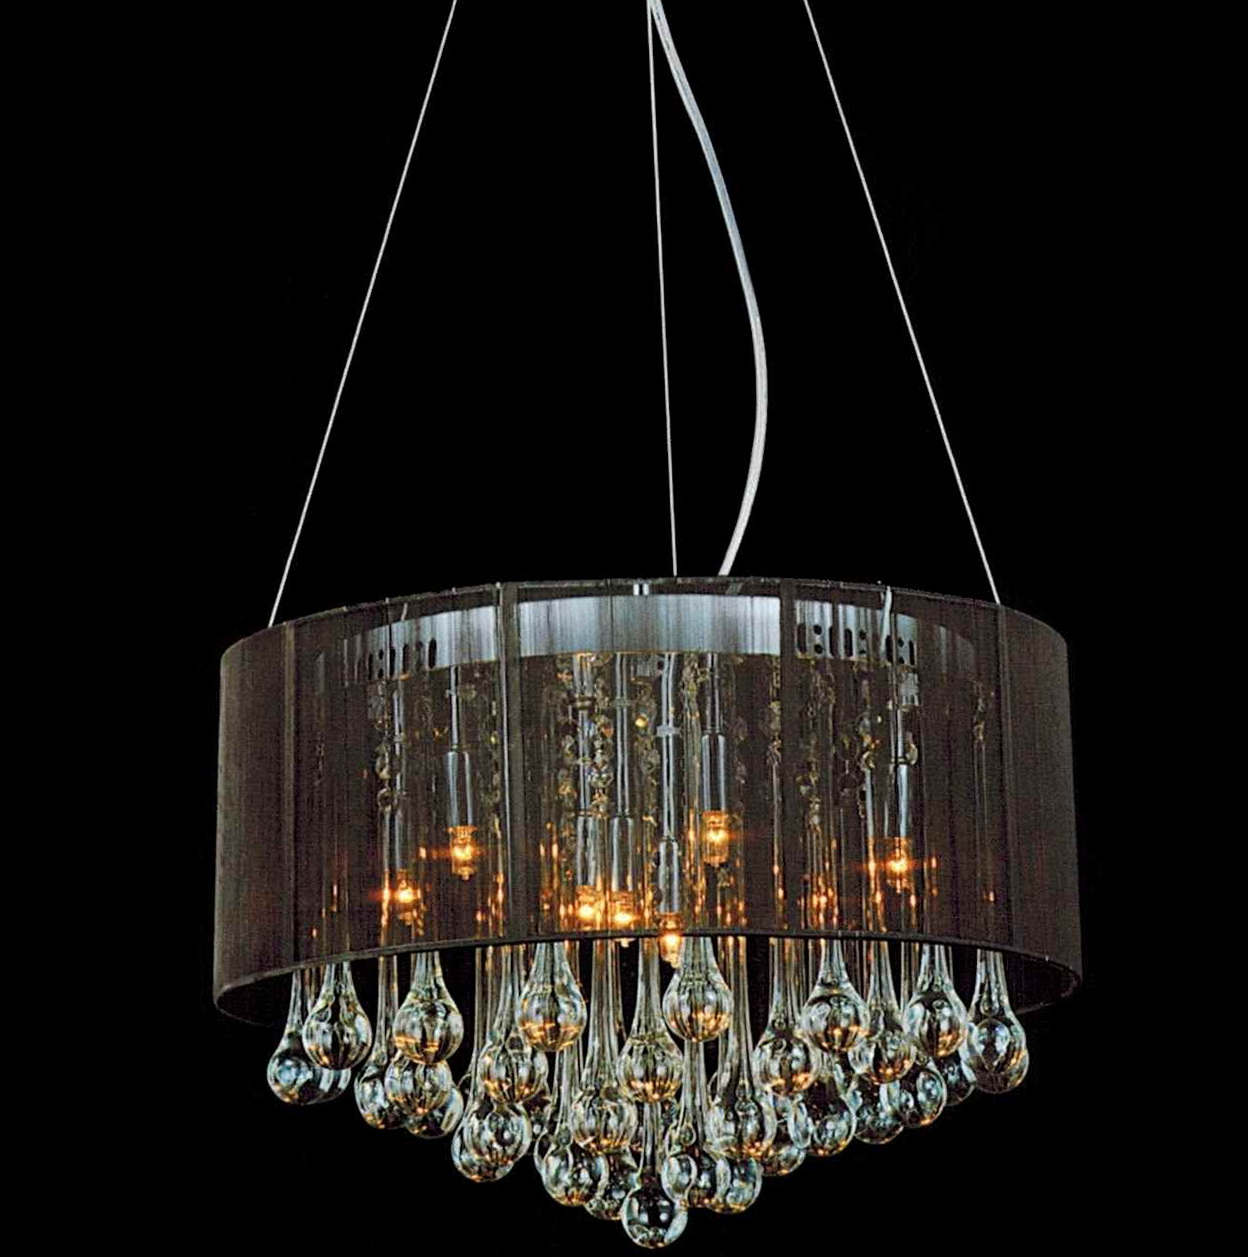 Black Shade With Crystals Chandelier Home Design Ideas